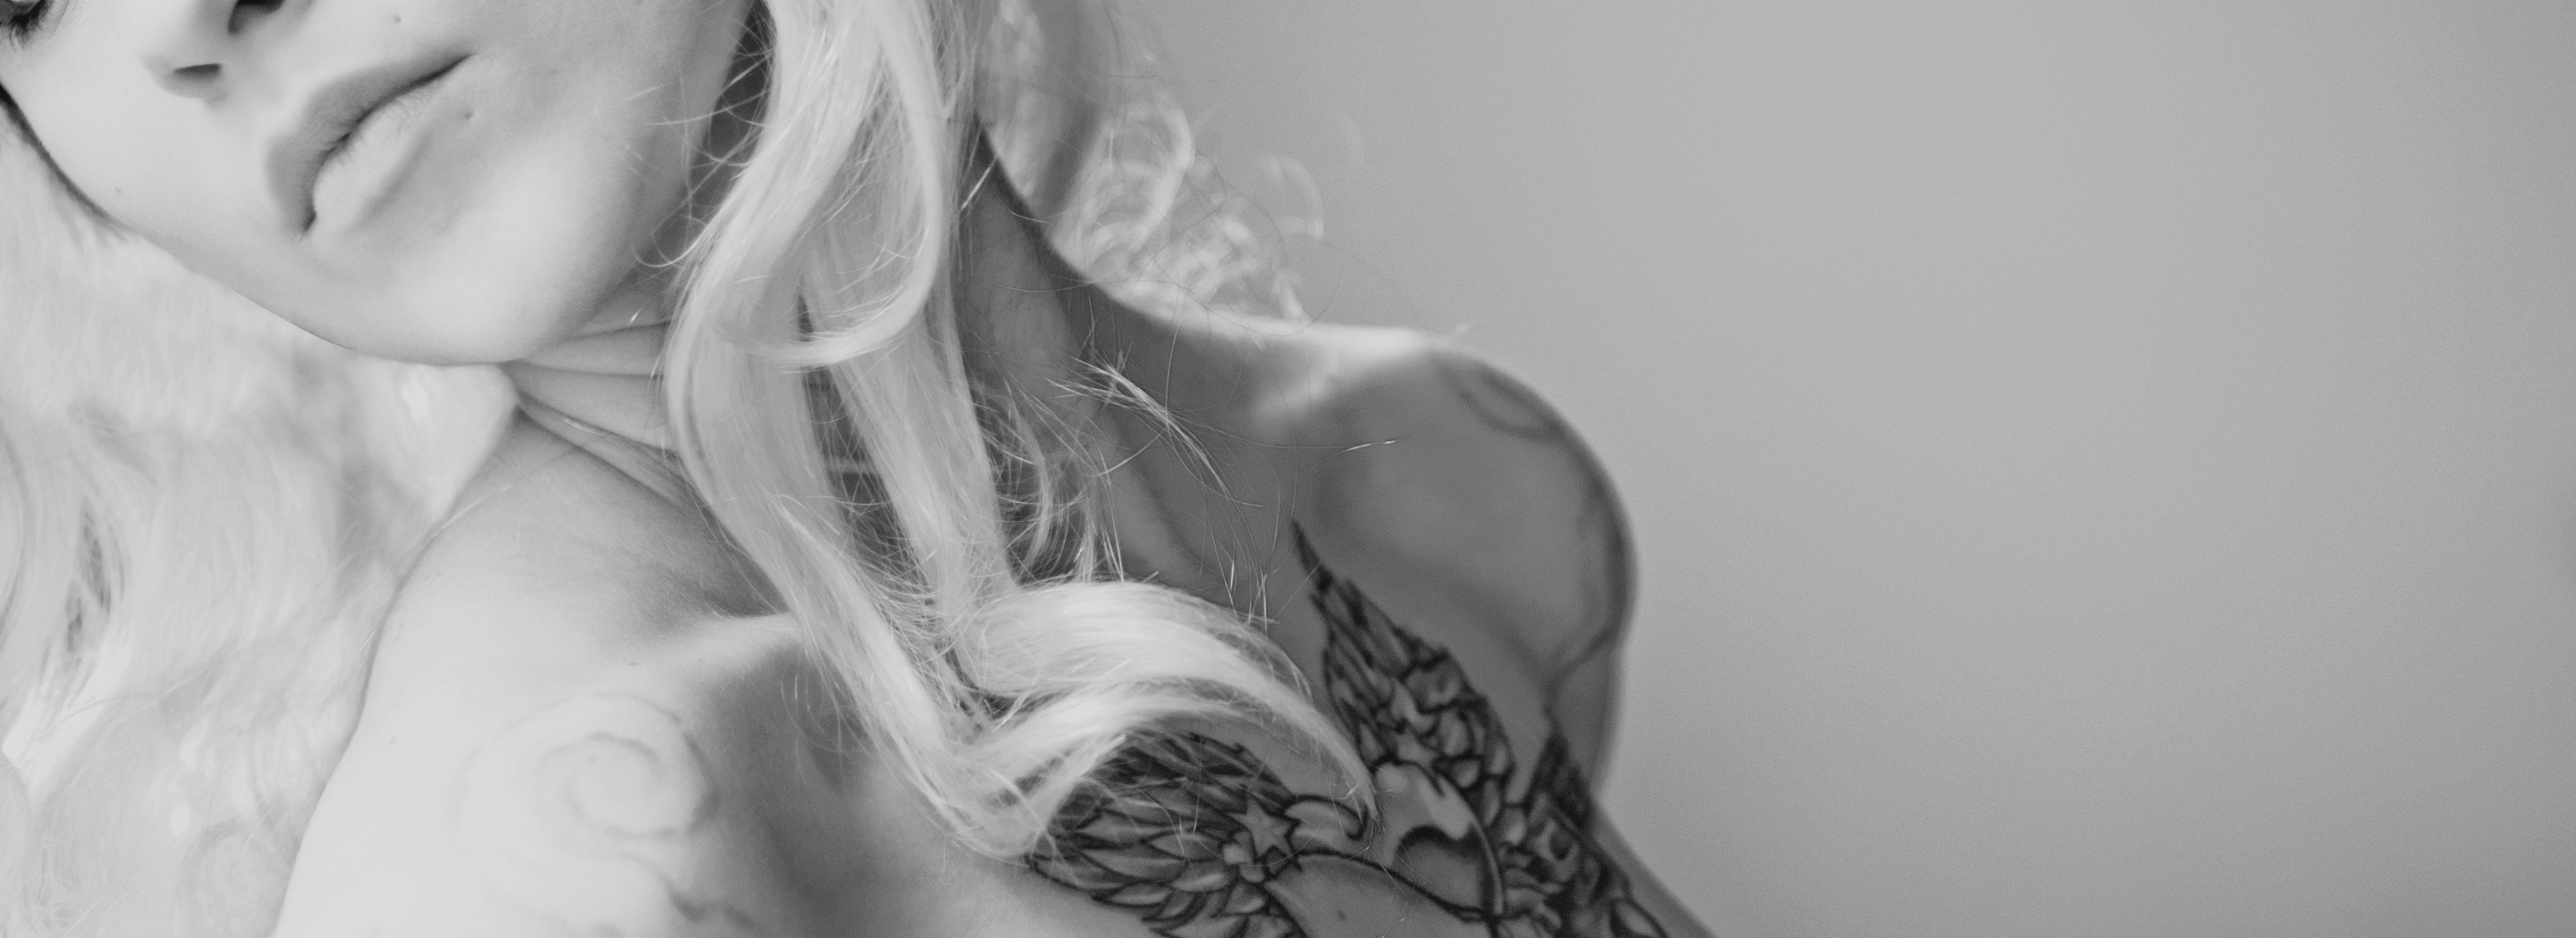 Woman with Tattoo | Breast Cancer Car Donations